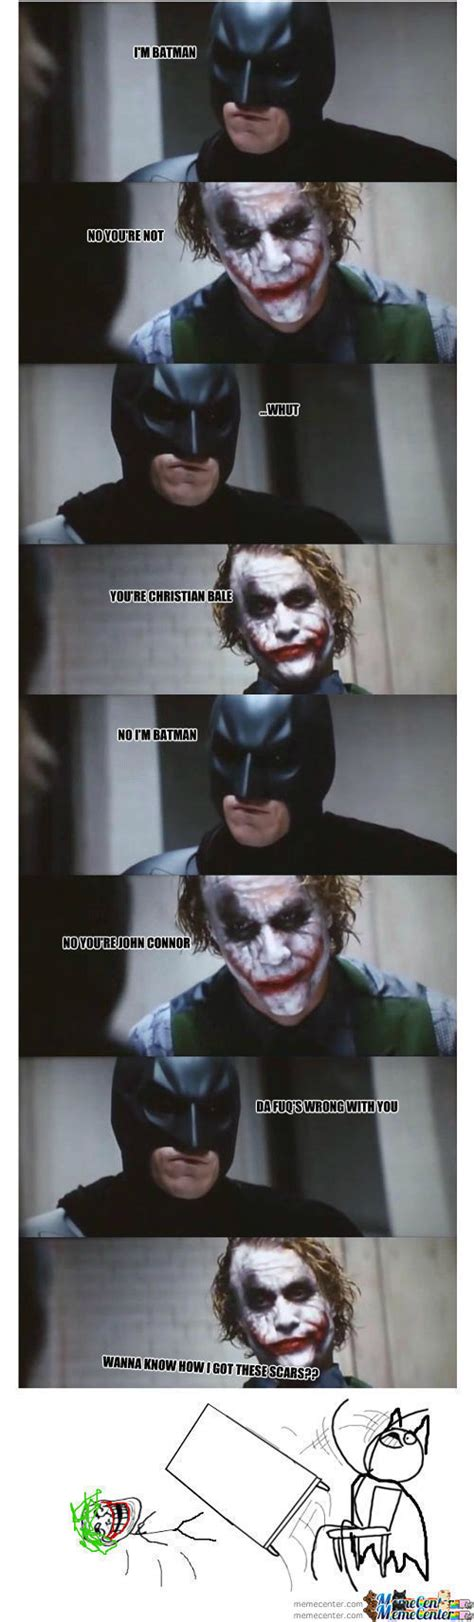 Batman Joker Meme - joker be trollin batman be hatin by alexhoran meme center